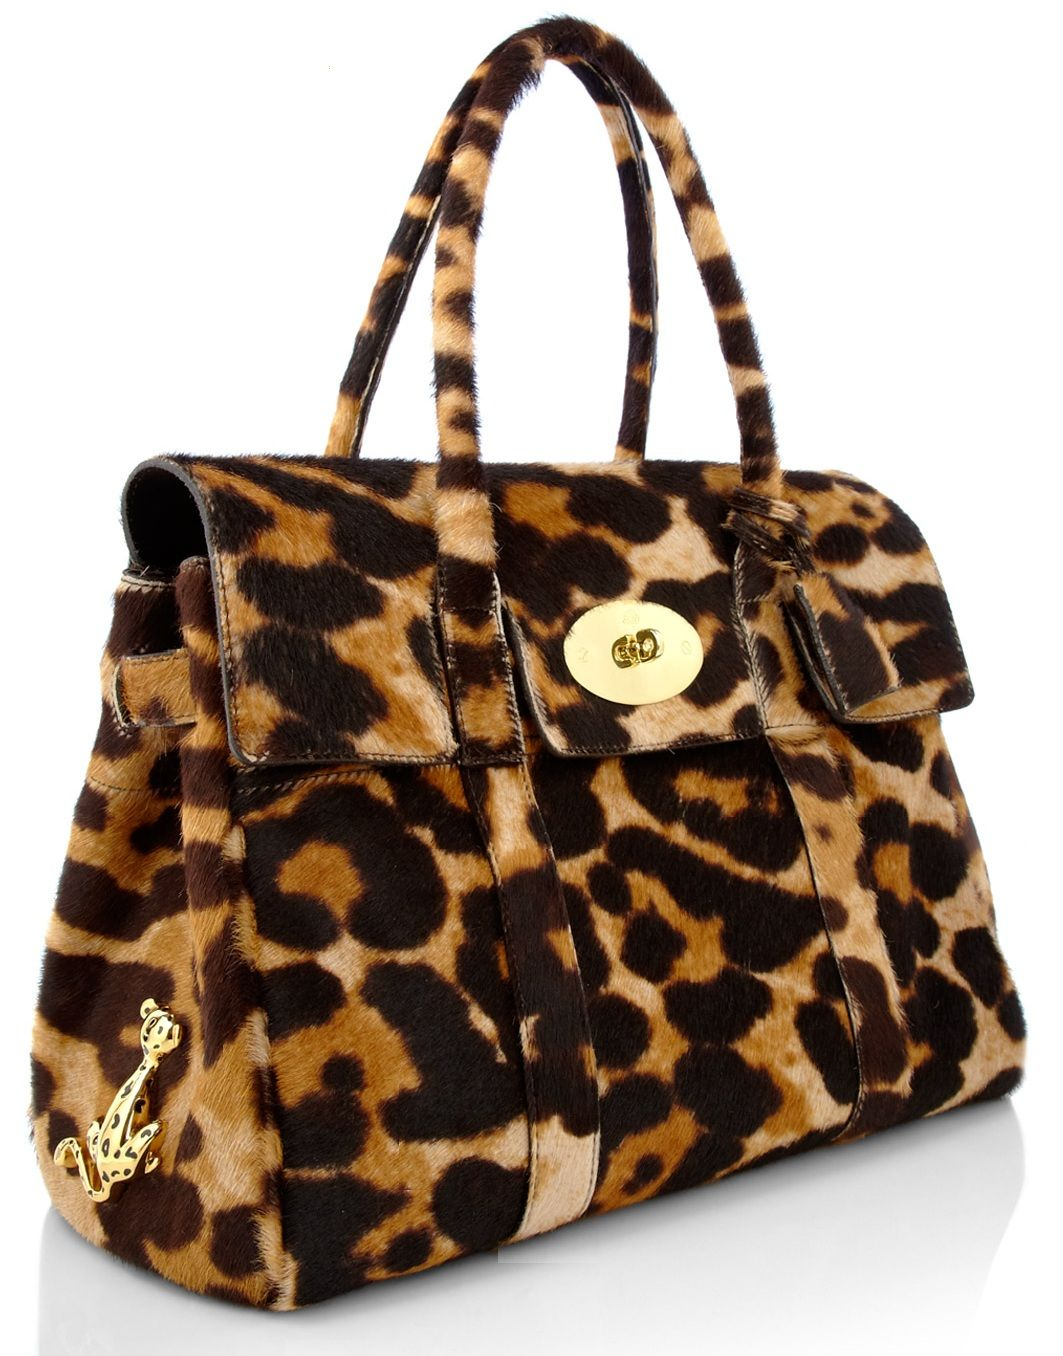 Mulberry Leopard Print Bag Perfectly What I Need This Season